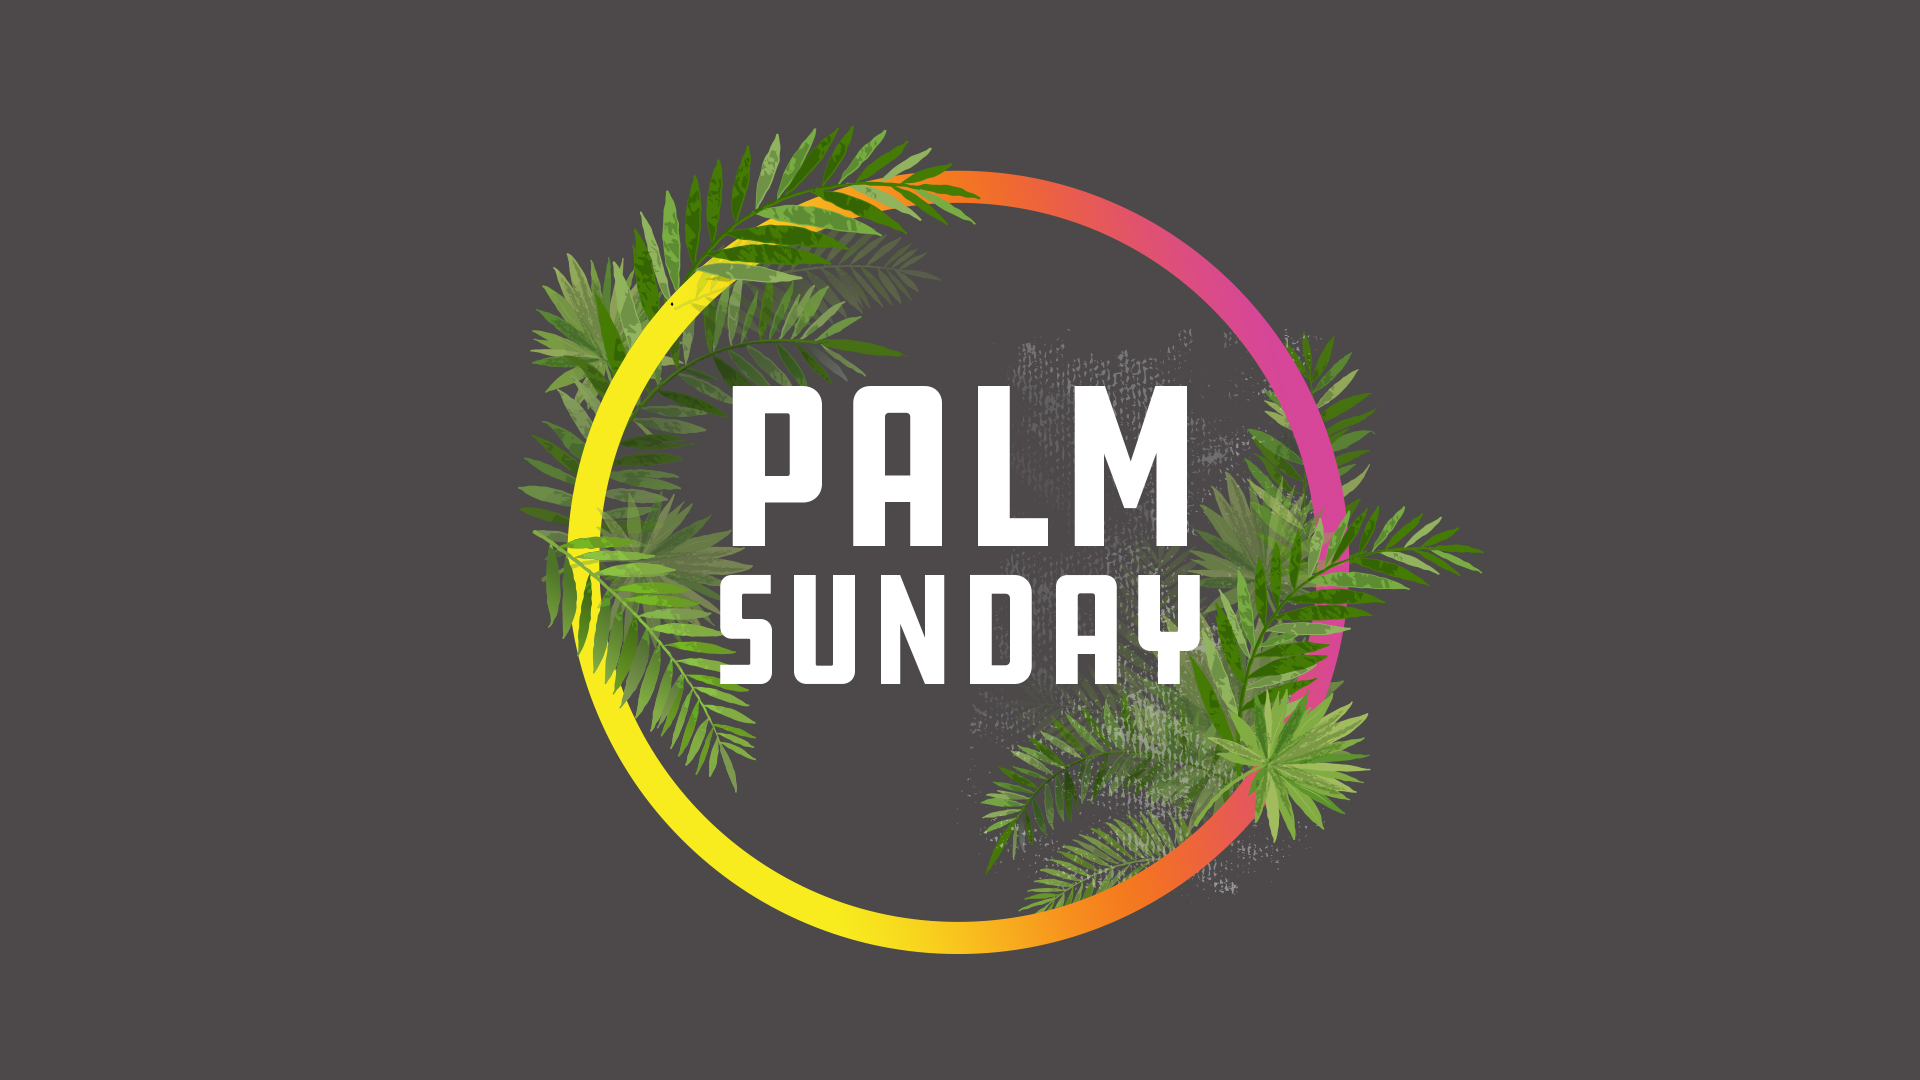 Palm Sunday 2019